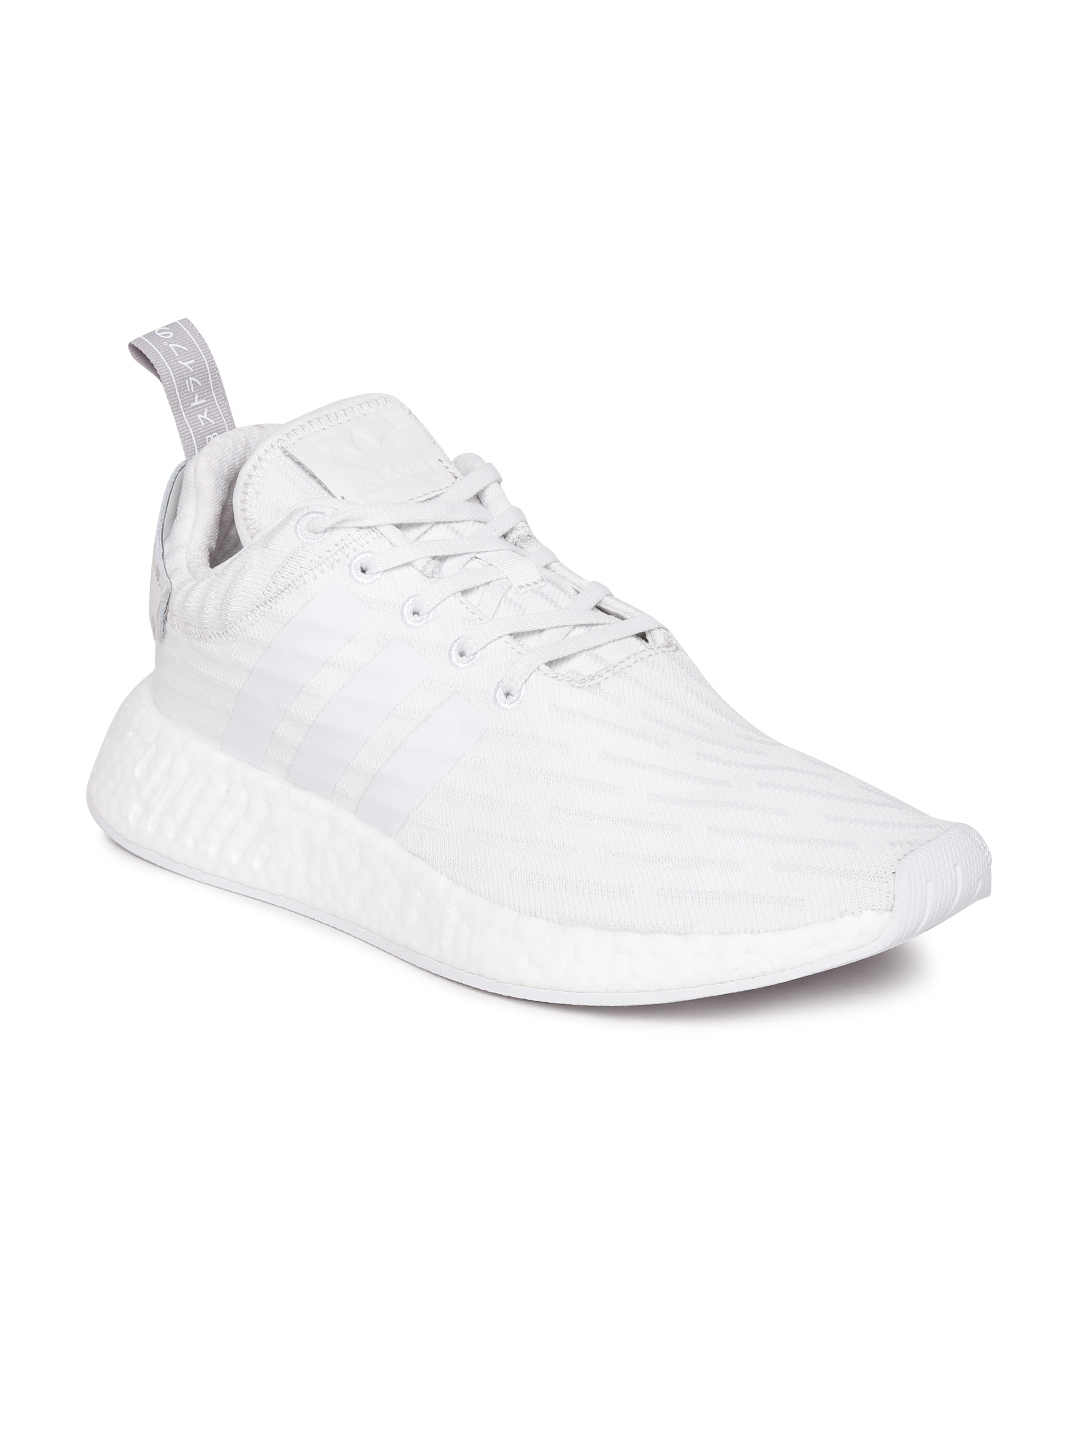 dccf2919b Buy ADIDAS Originals Women Off White NMD R2 W Woven Sneakers ...